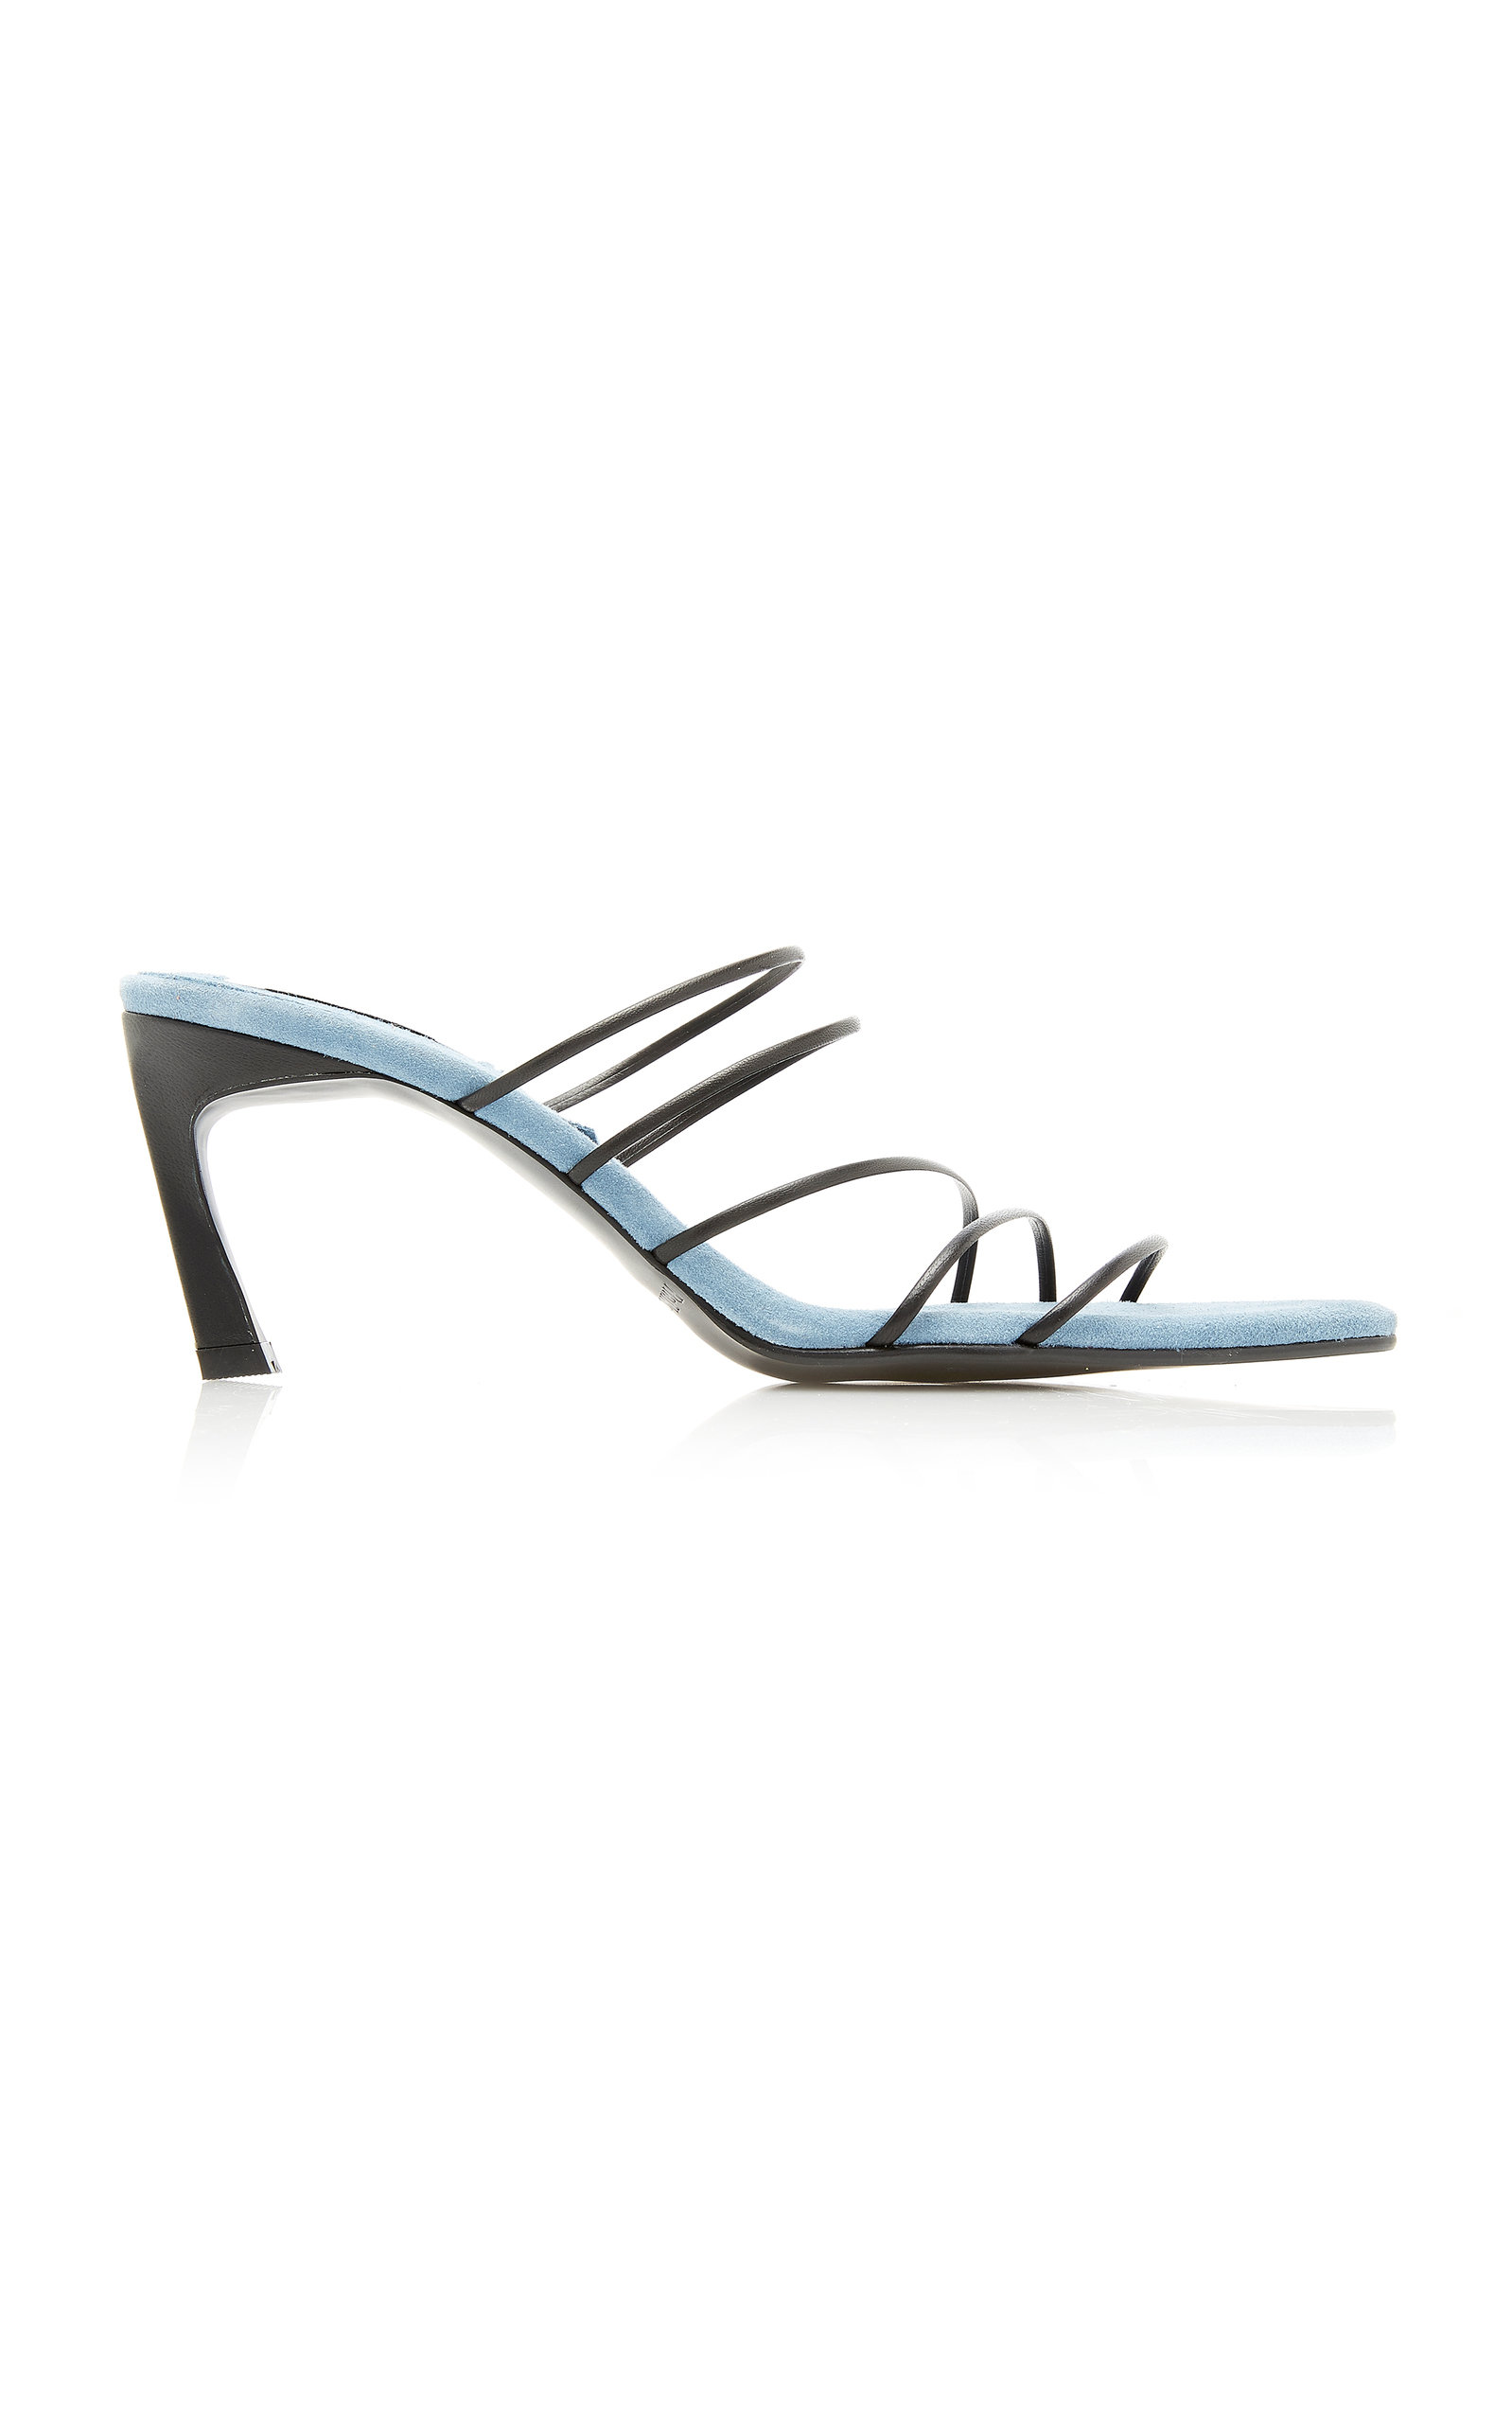 Reike Nen Sandals STRING TWO-TONE LEATHER SANDALS SIZE: 38.5